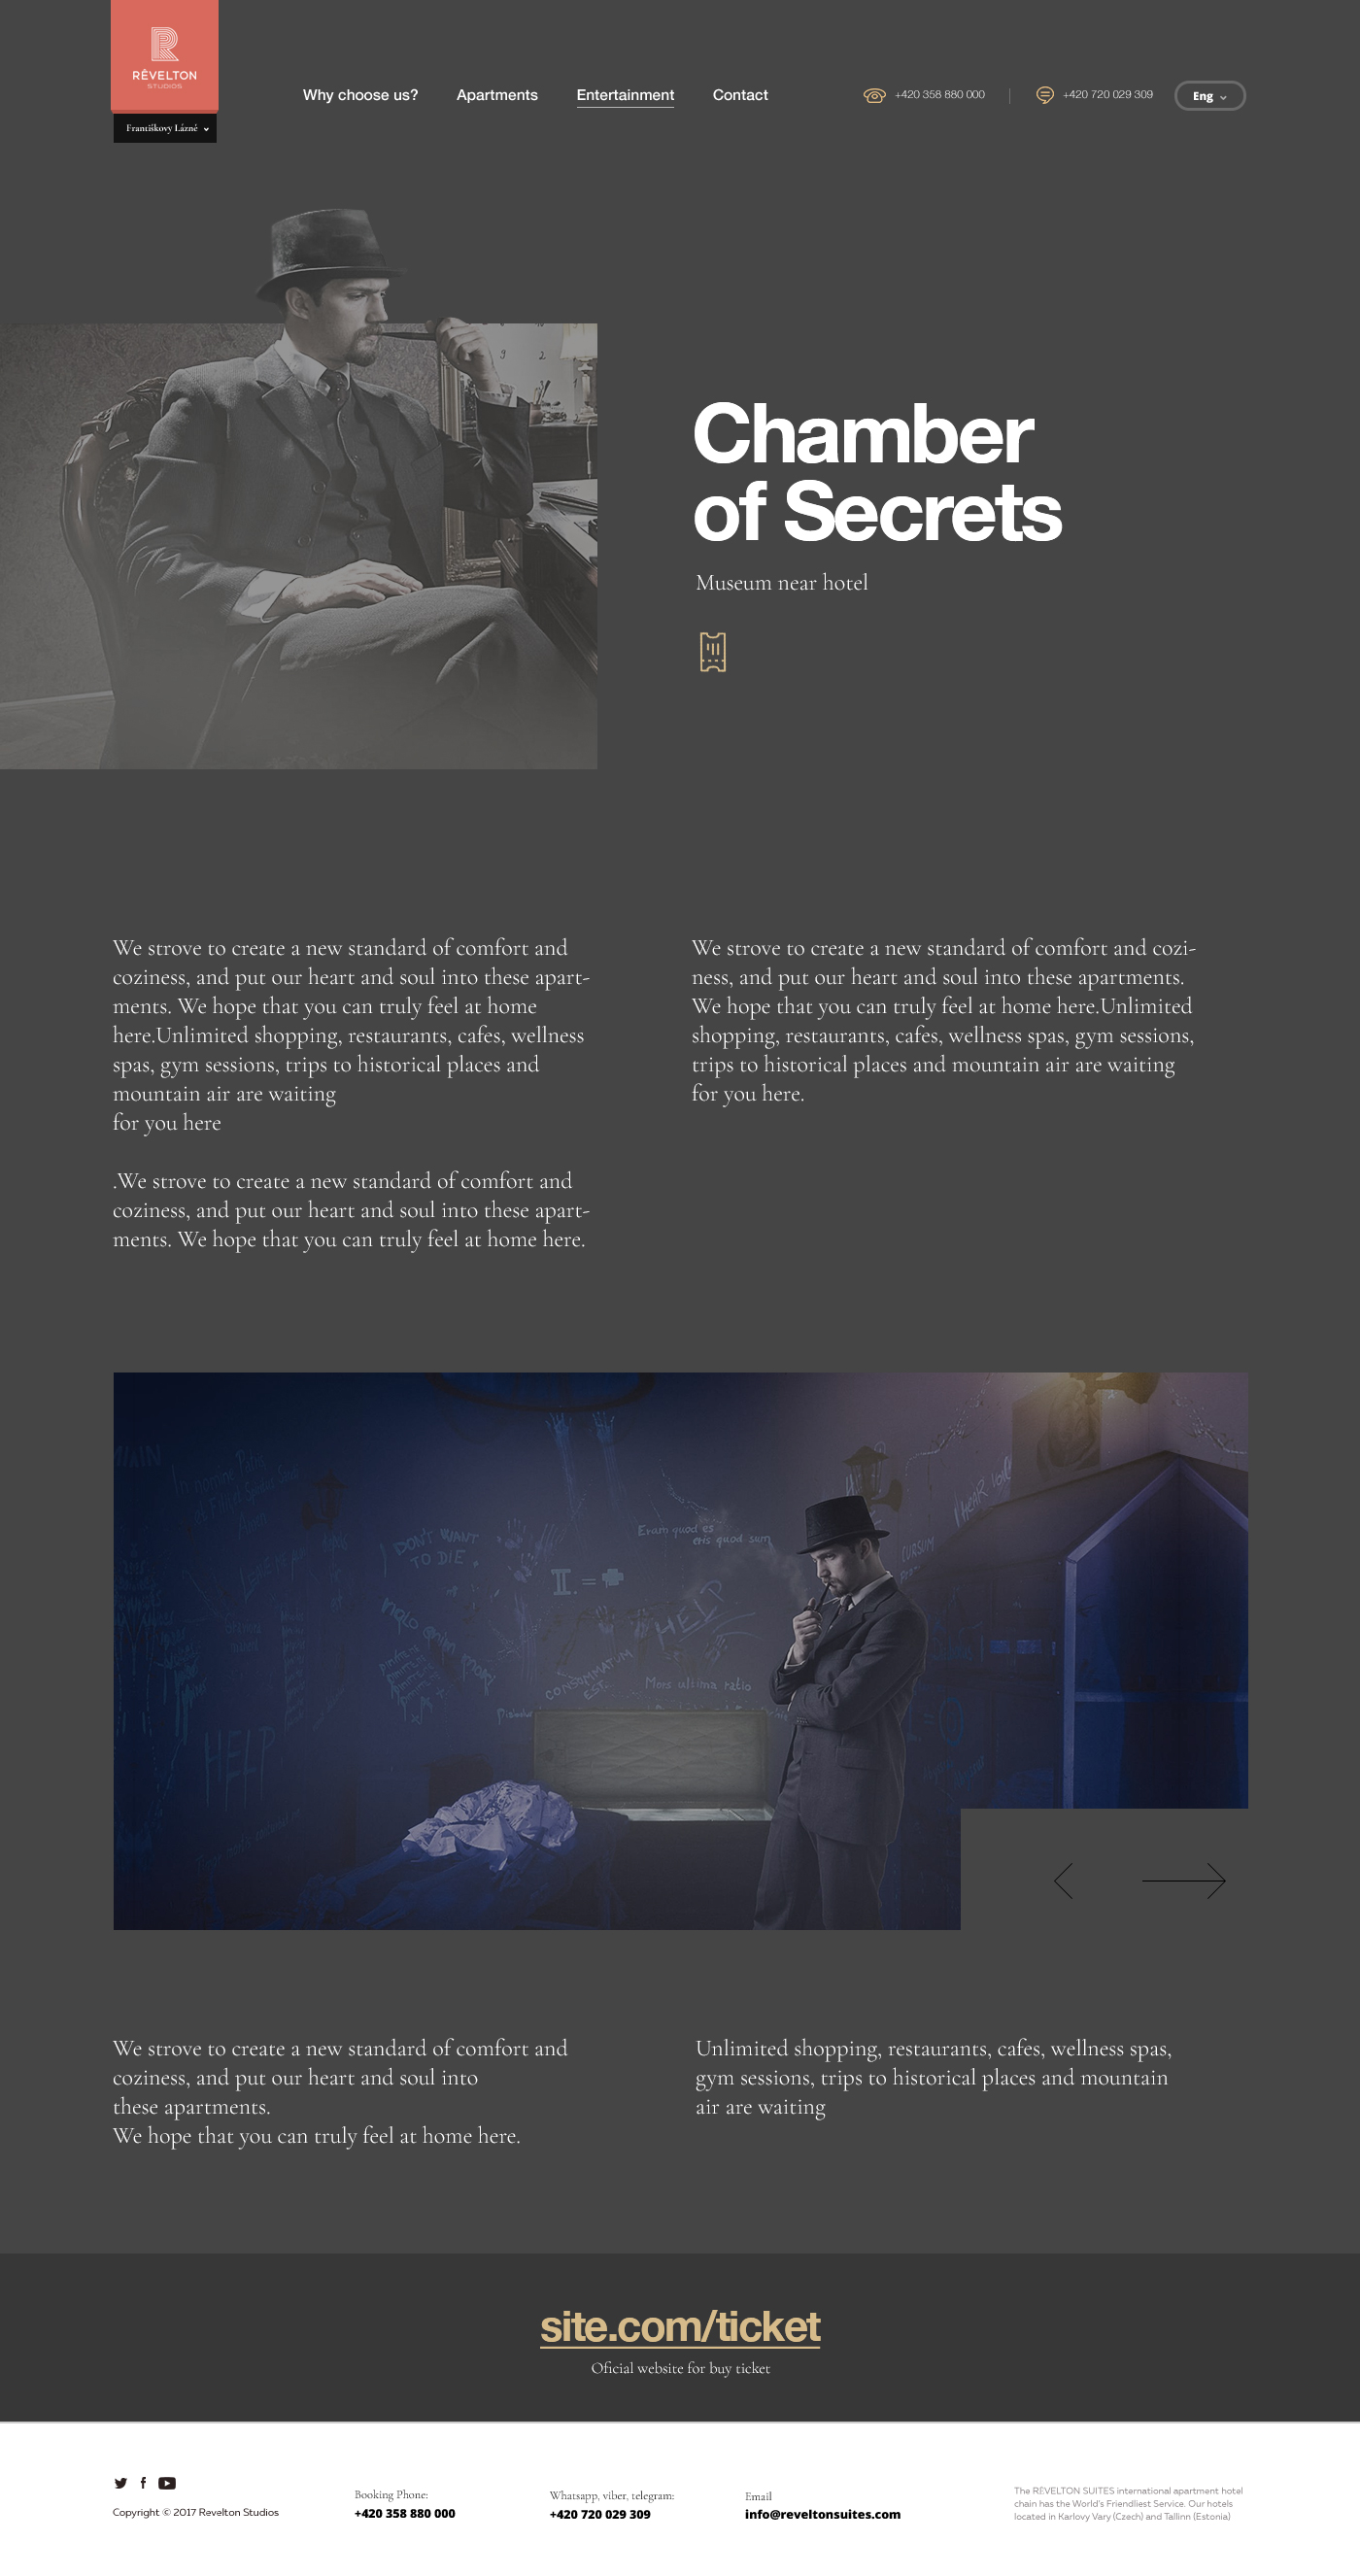 Museum Page, Websitedesign, Hotel Near Museum page, Cz, Intraction , User Interface Design , Revelton design, Chingiz Adilov, Ux research